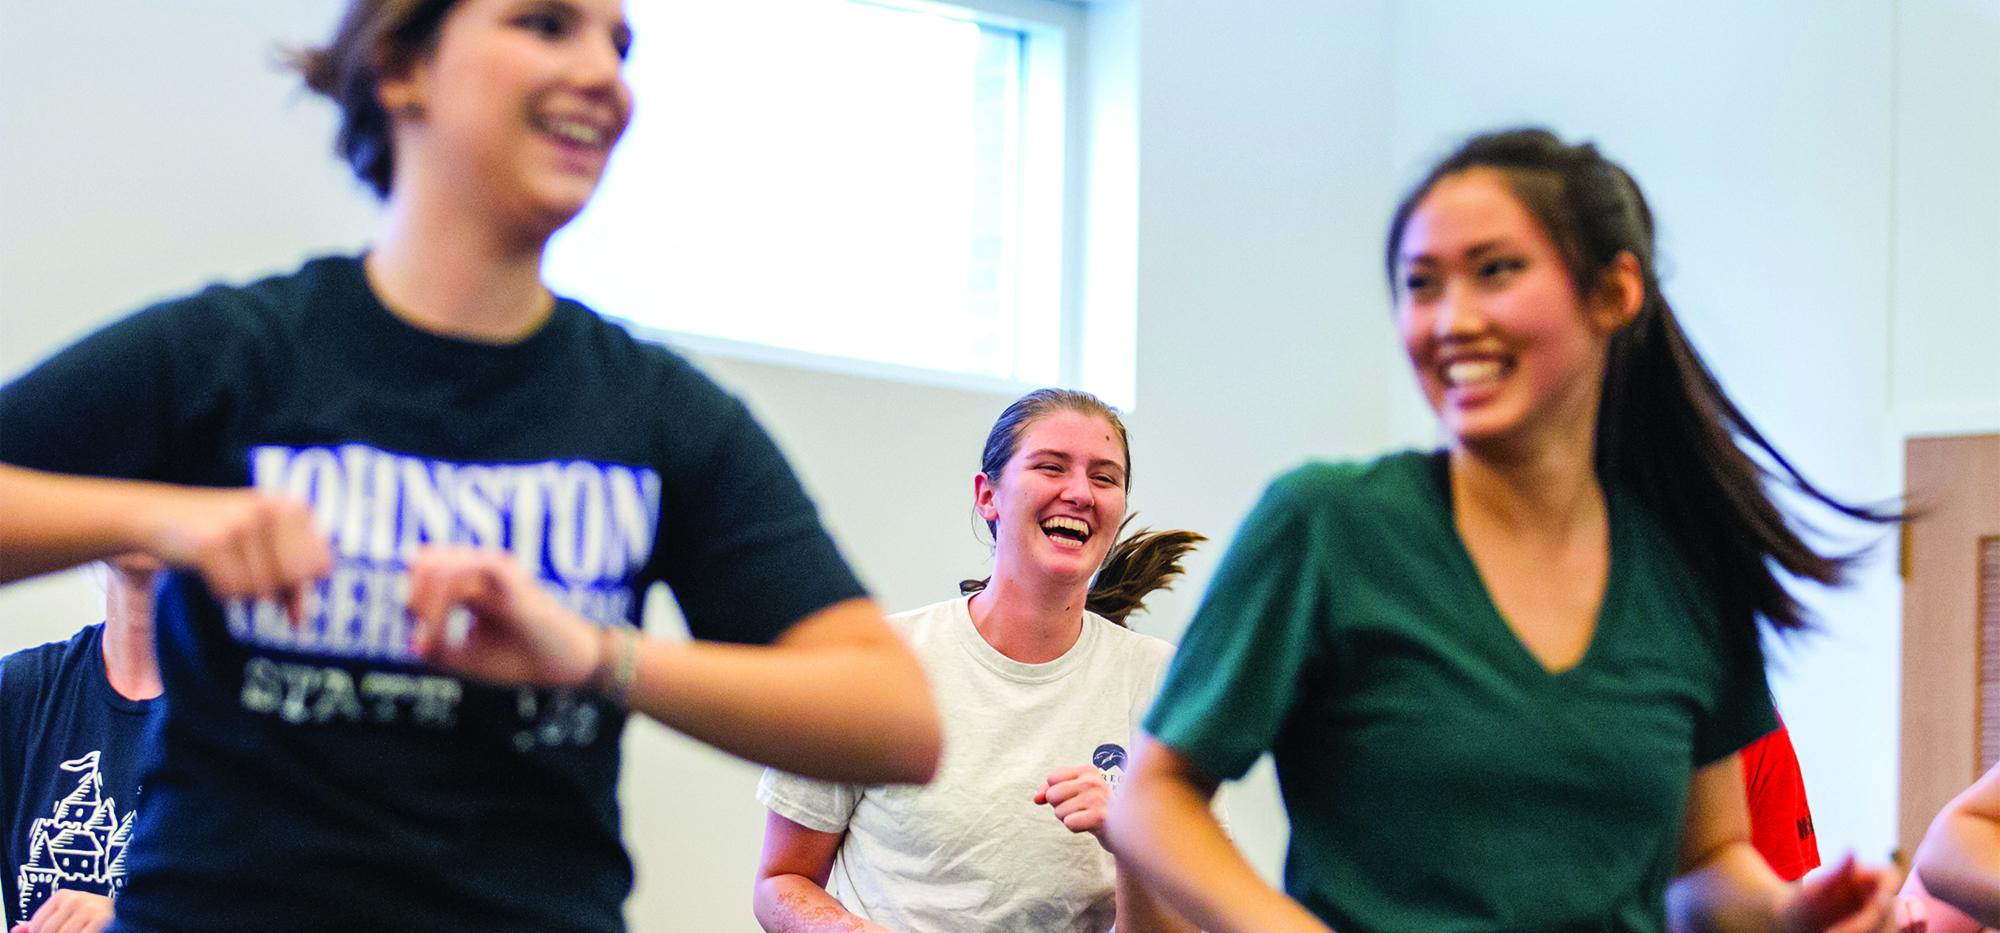 Students laugh while taking a zumba class